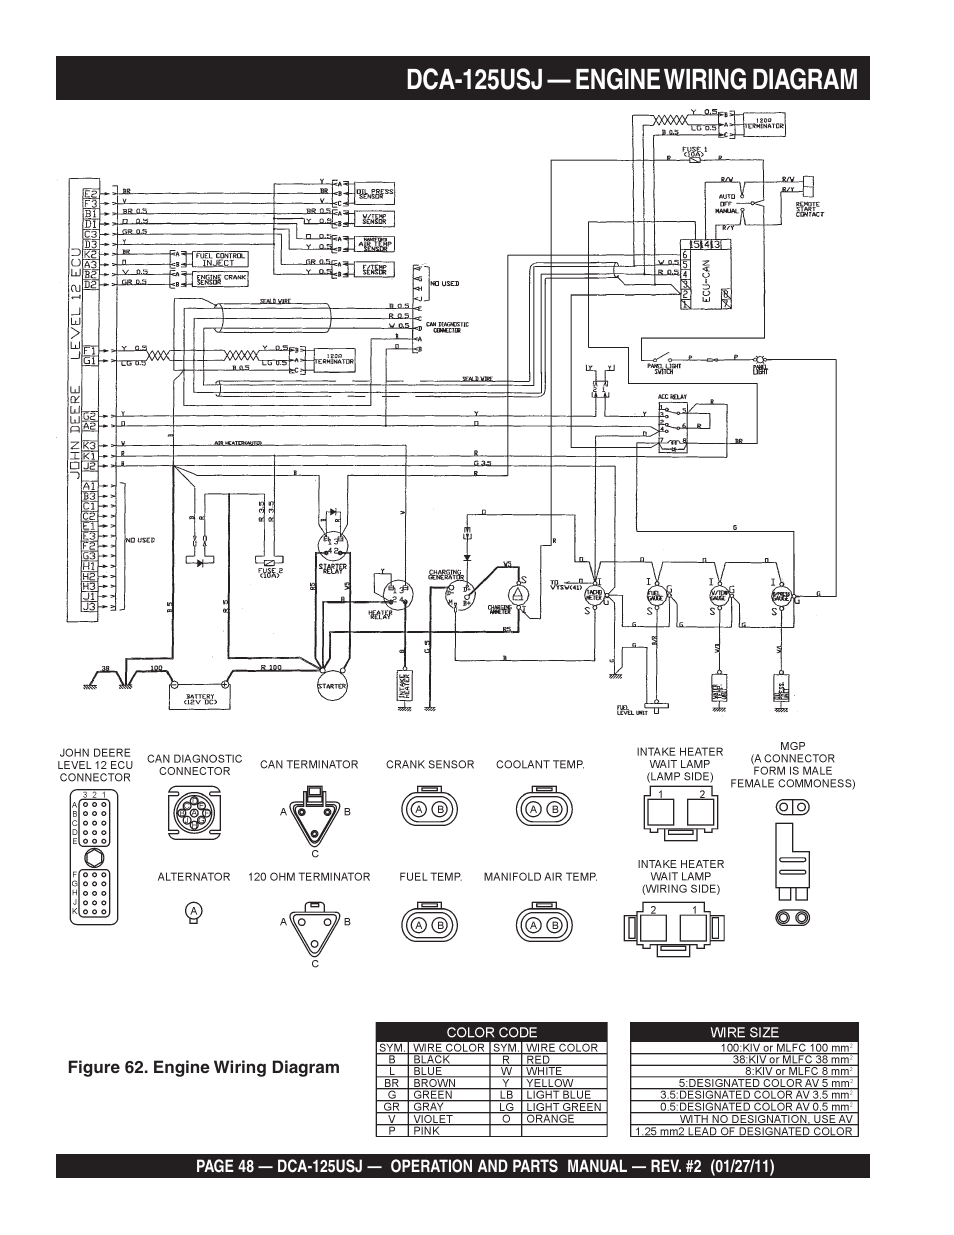 dca 125usj engine wiring diagram multiquip mq power 60 hz dca 125usj engine wiring diagram multiquip mq power 60 hz generator dca125usj user manual page 48 84